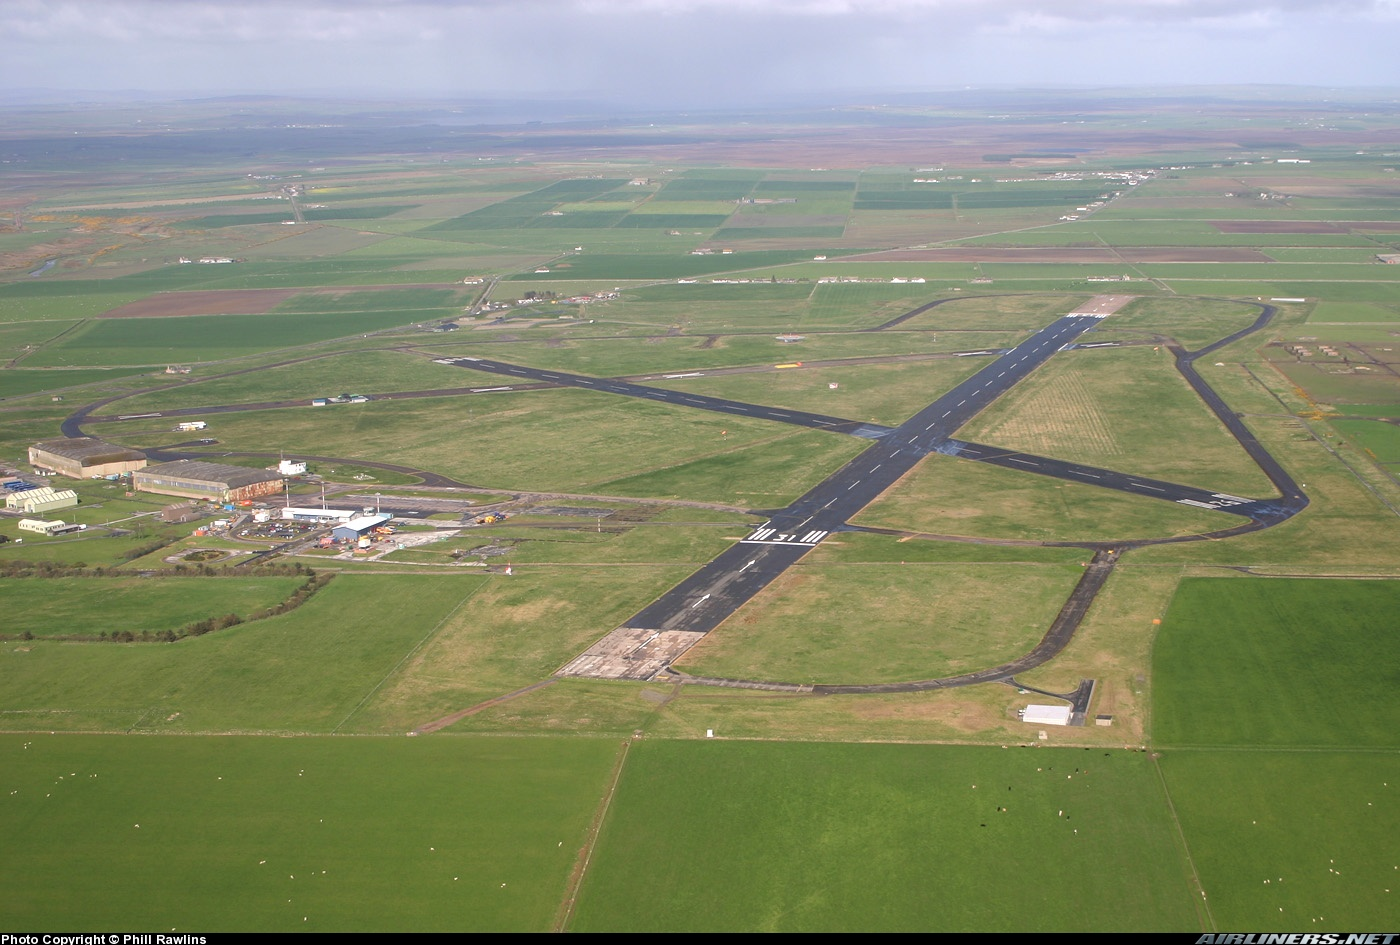 Wick United Kingdom  city images : Wick Airport Wick, UNITED KINGDOM